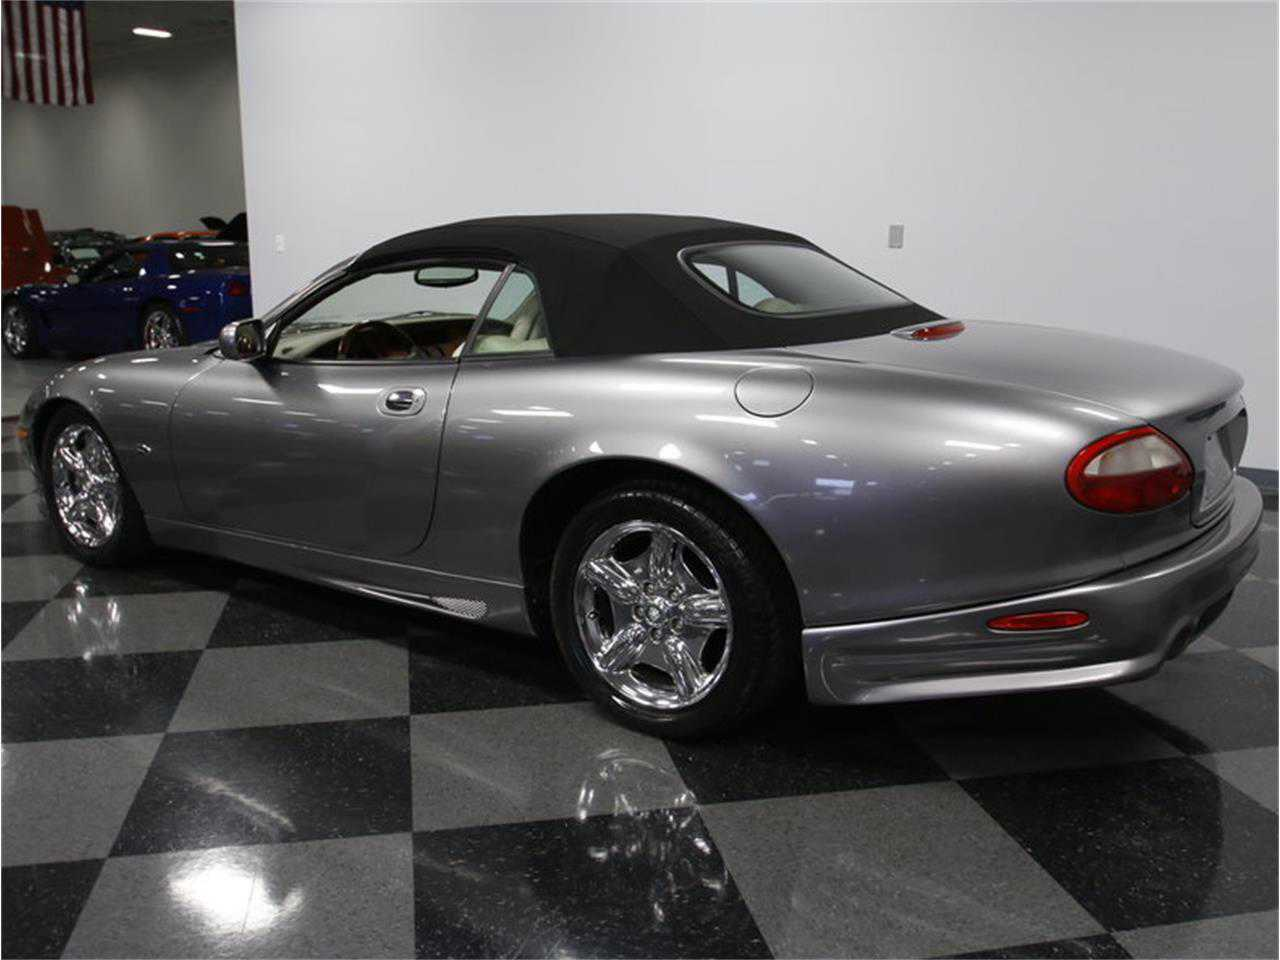 1999 Jaguar XK8 for sale in Concord, NC | SAJGX2045XC042523